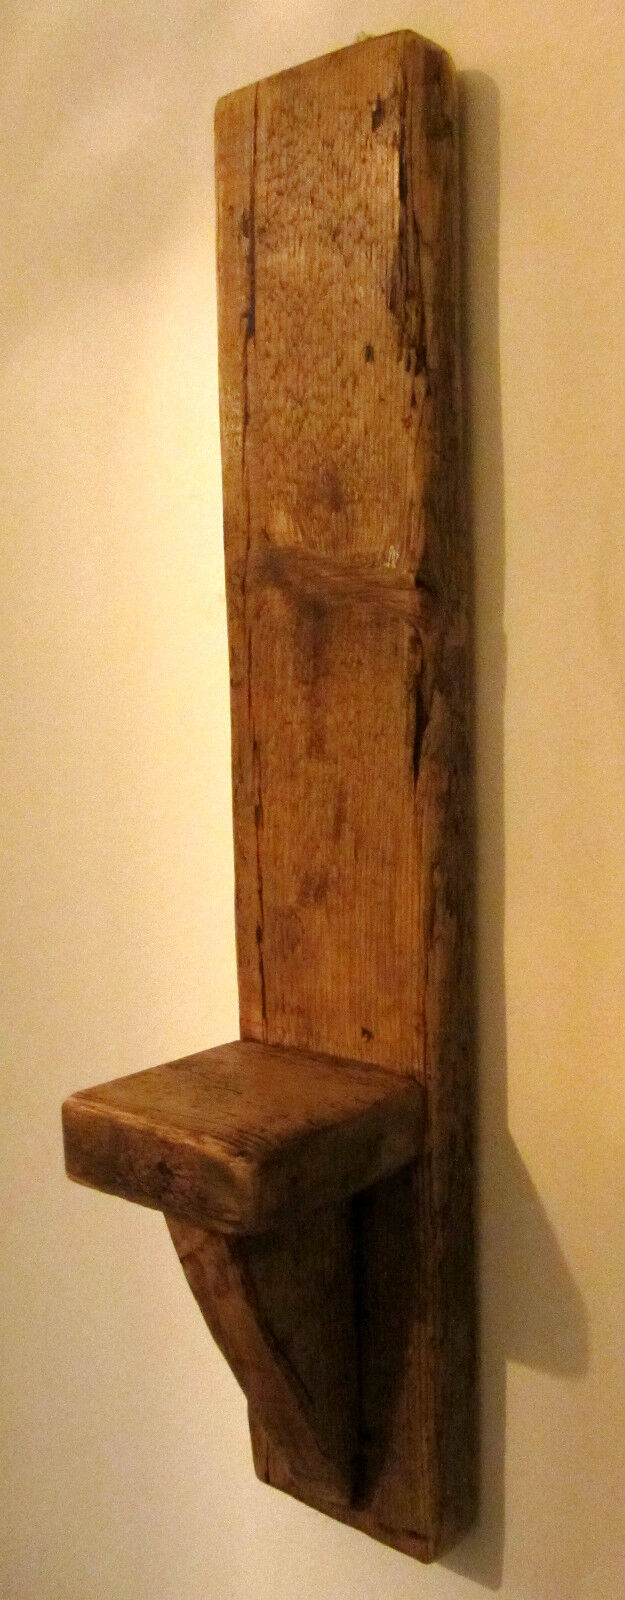 PAIR OF LARGE TALL 60CM SOLID PLANK WOOD RUSTIC RUSTIC RUSTIC WAXED WALL SCONCE CANDLE HOLDER 45c89f